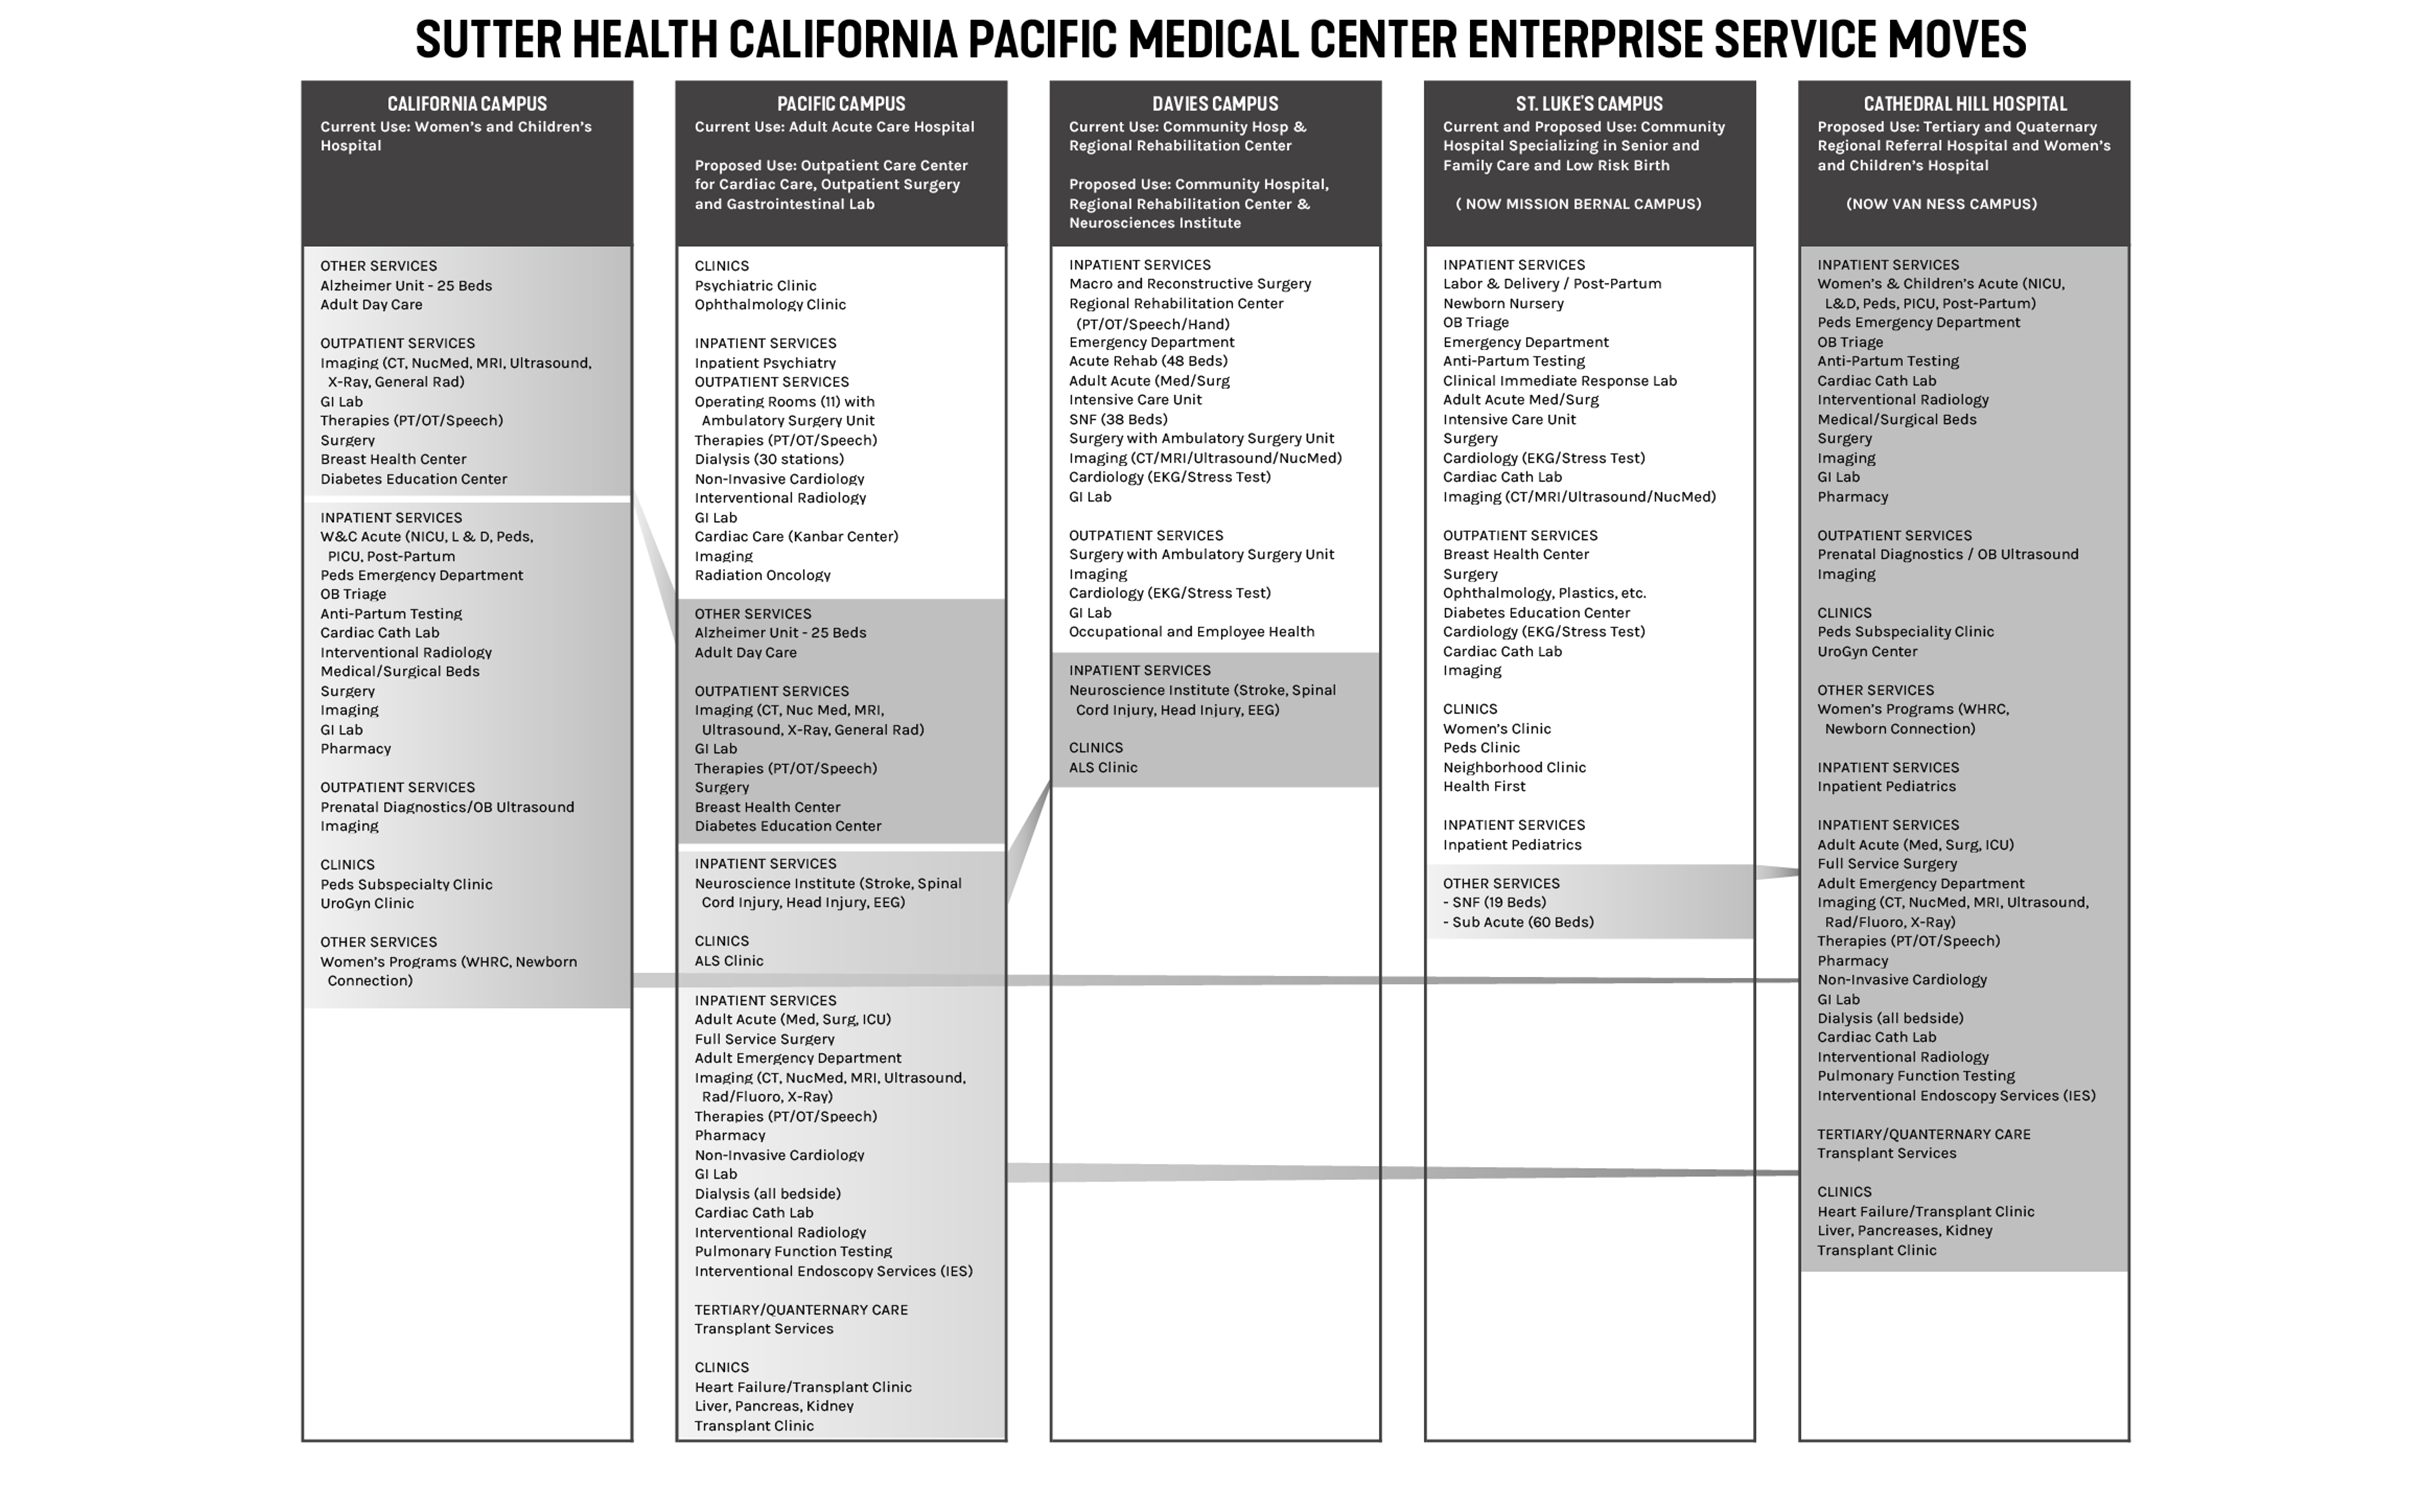 CPMC Health Strategy SmithGroup Planning